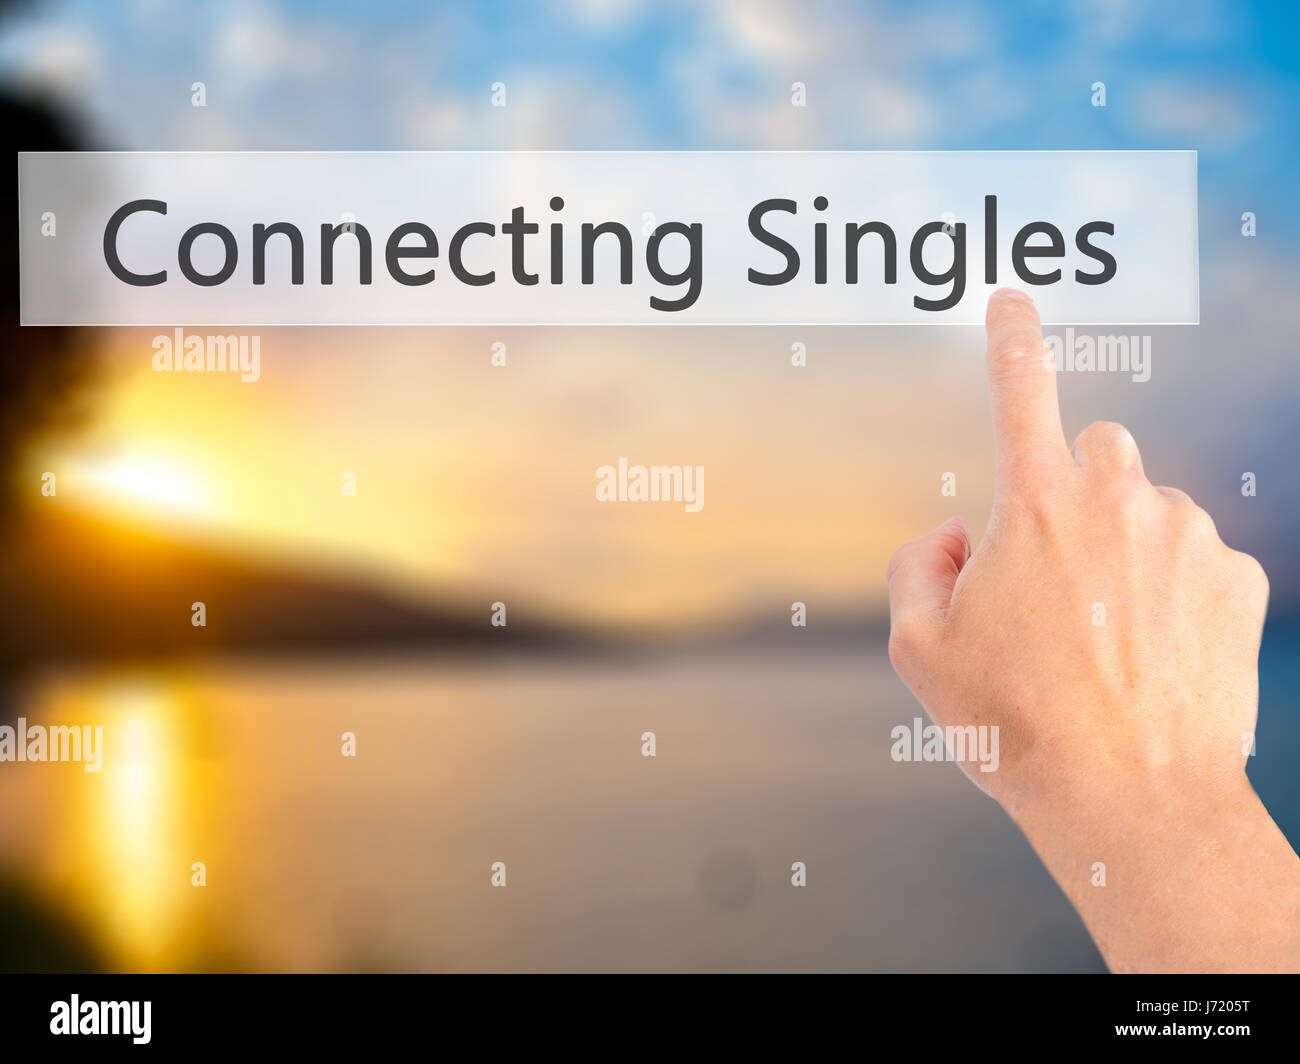 connectingsingles com sign in